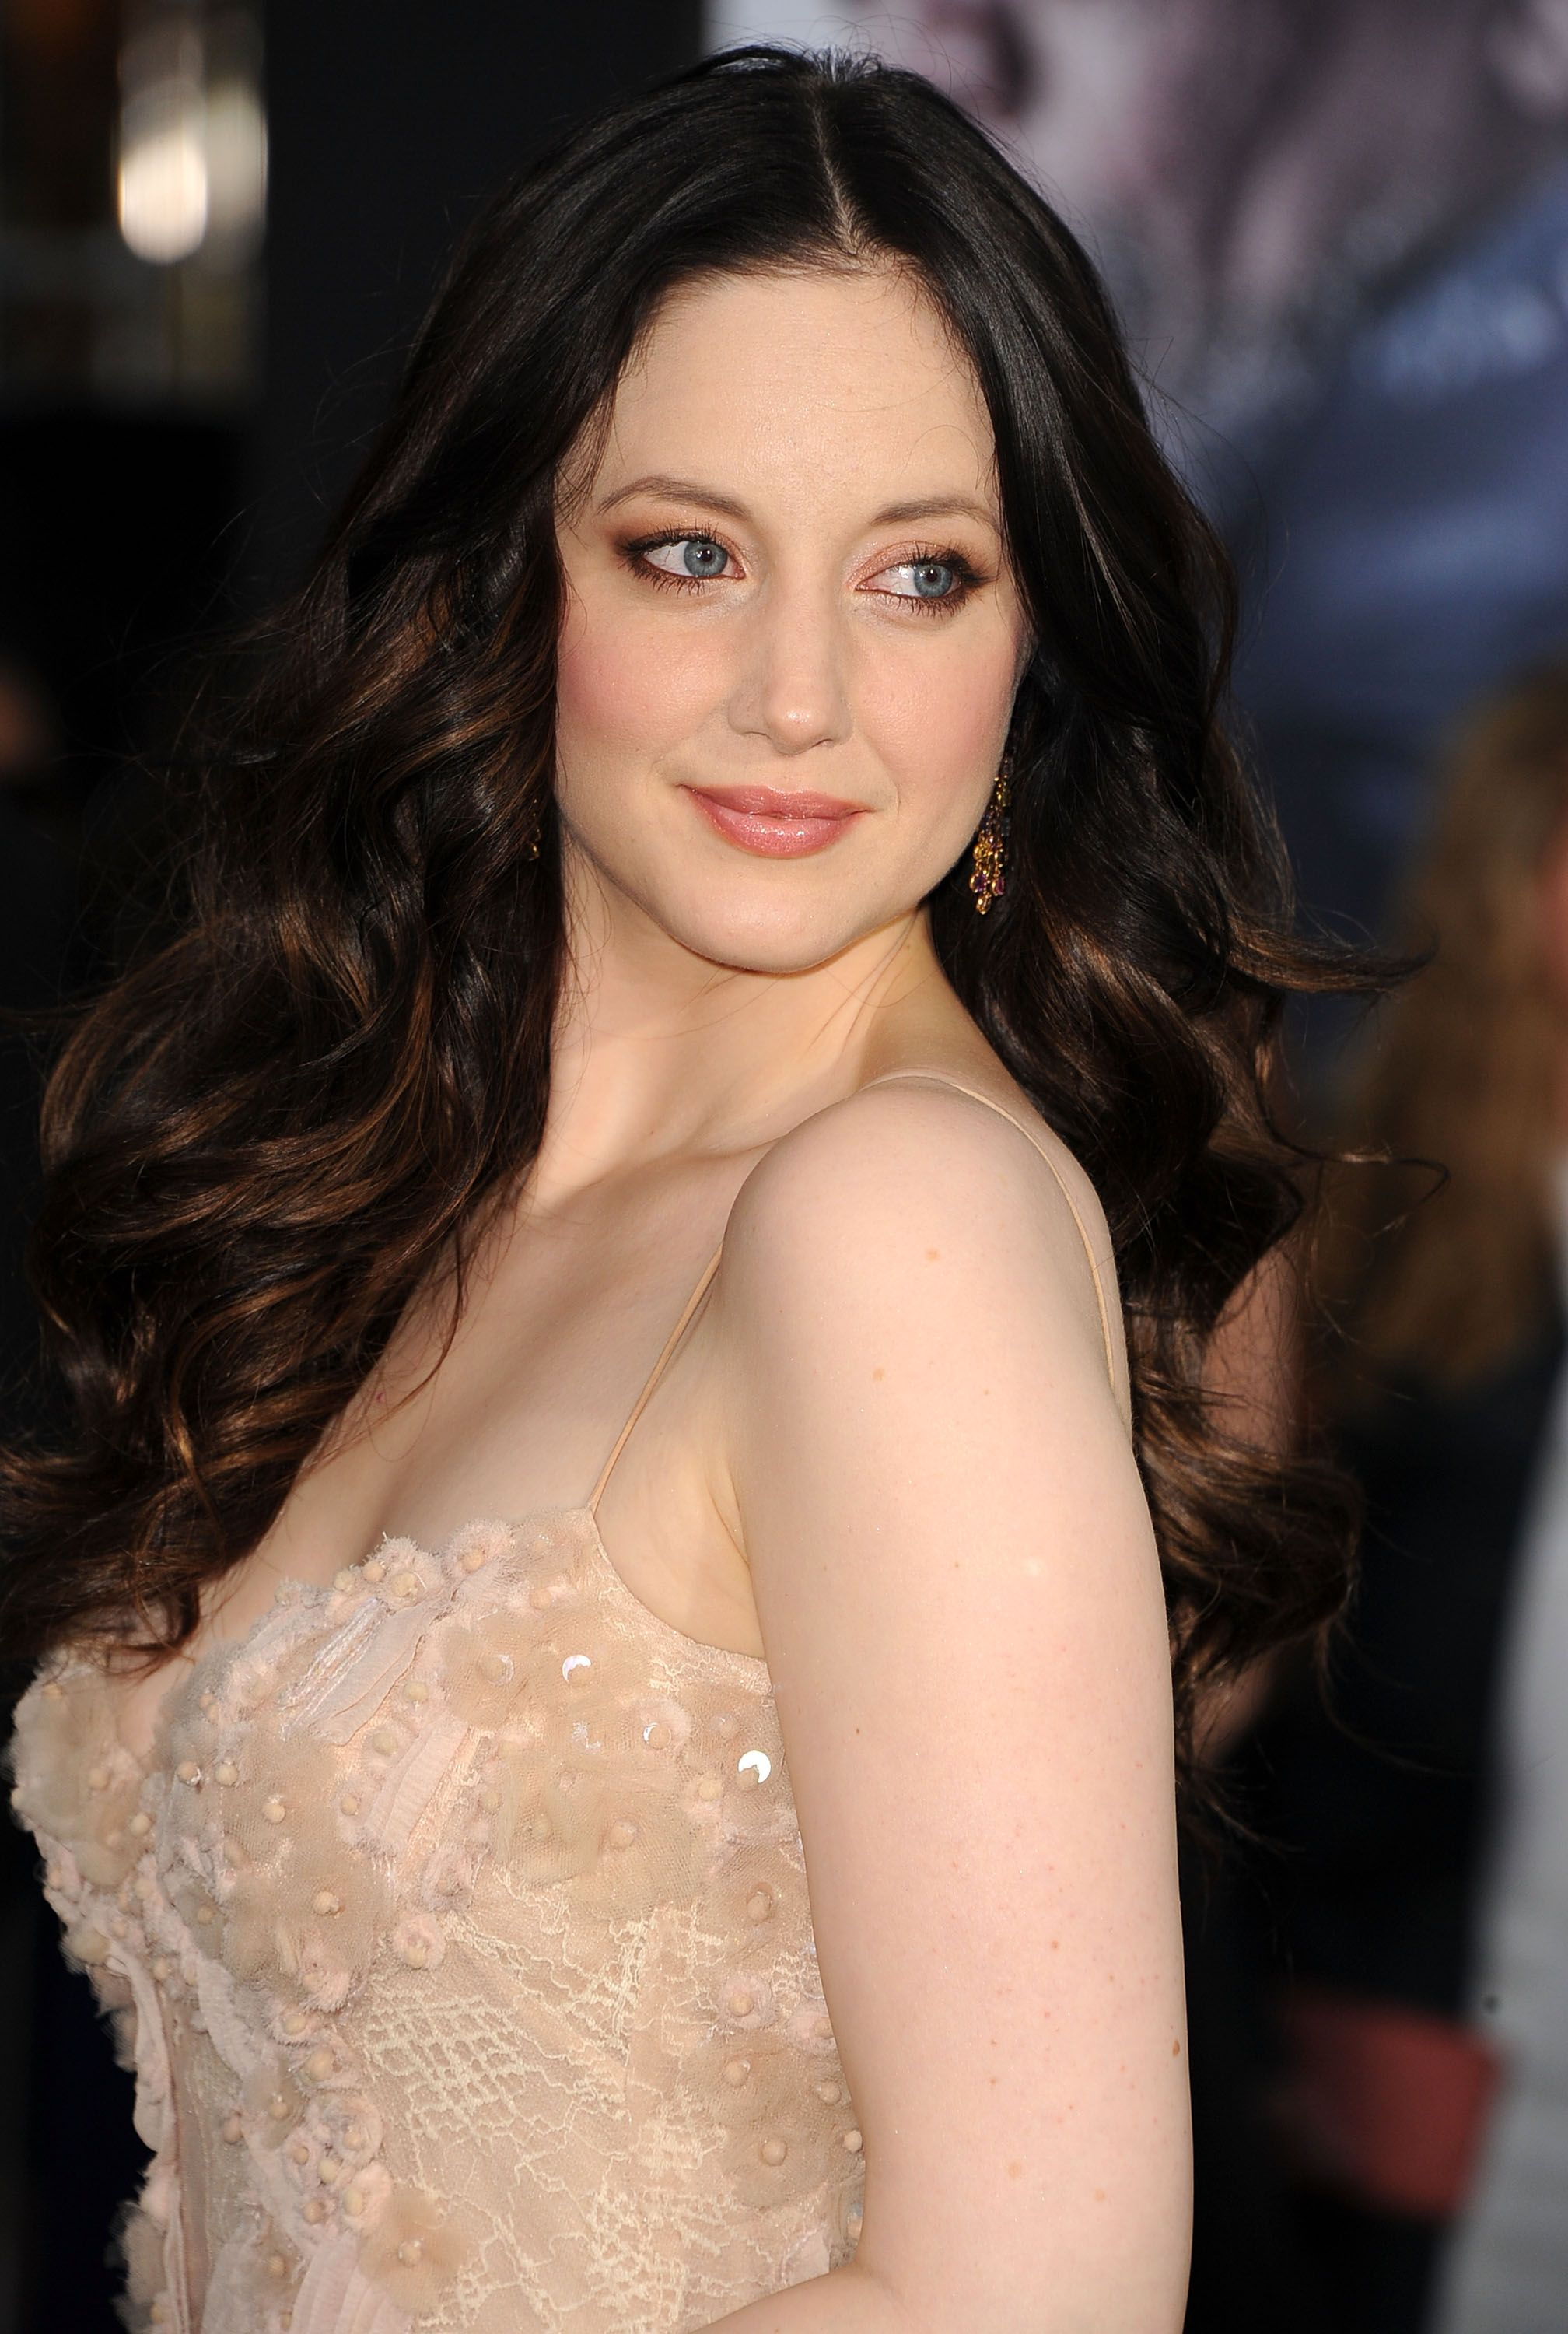 Andrea Riseborough earned a  million dollar salary - leaving the net worth at 5 million in 2018